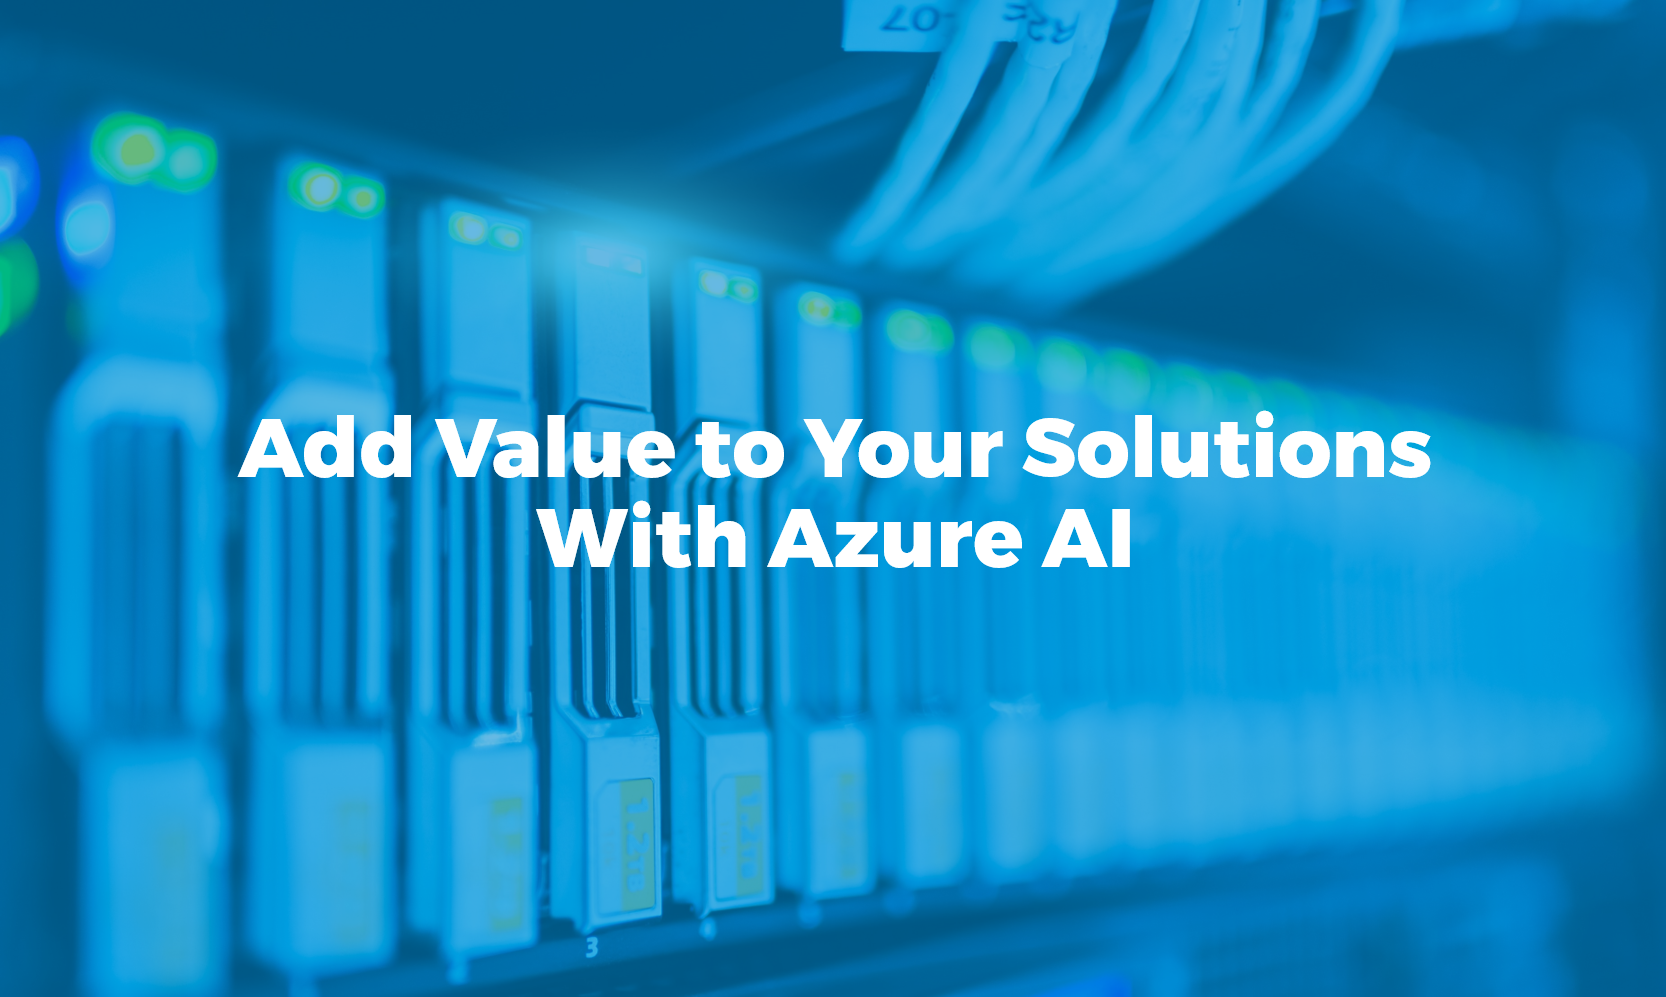 Bismart add value to your solutions with Azure AI